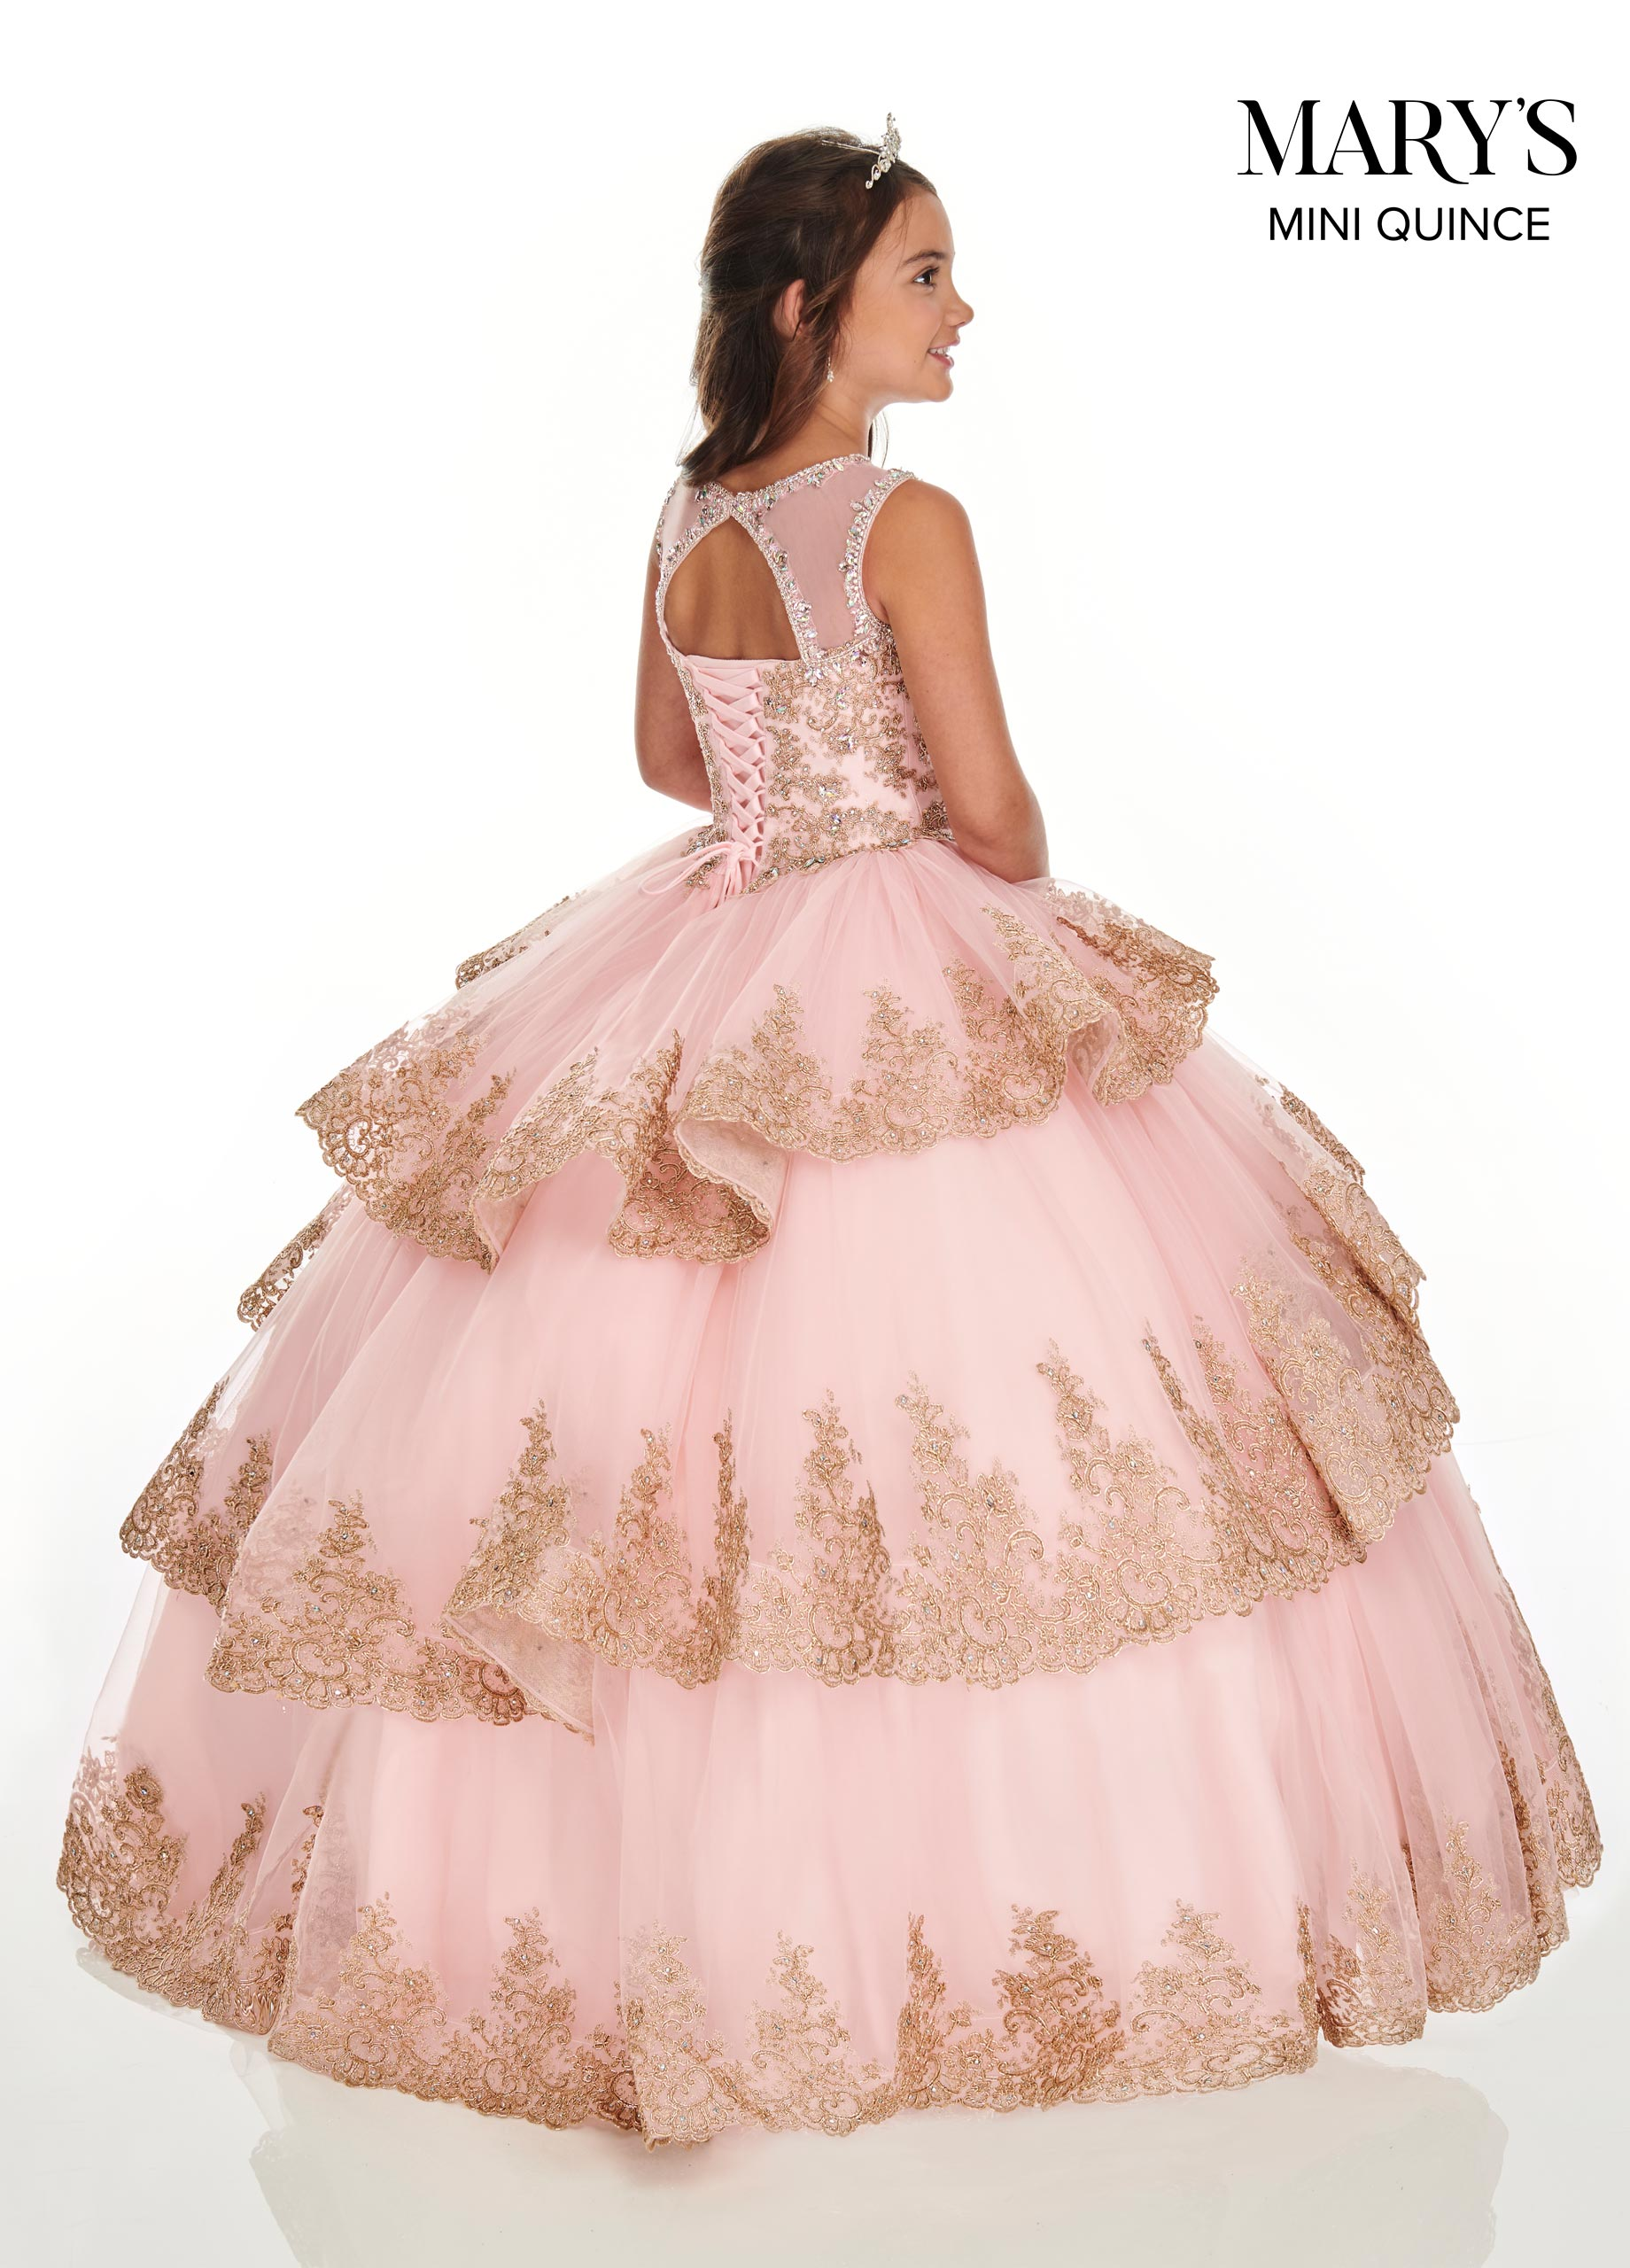 Little Quince Dresses | Mini Quince | Style - MQ4019